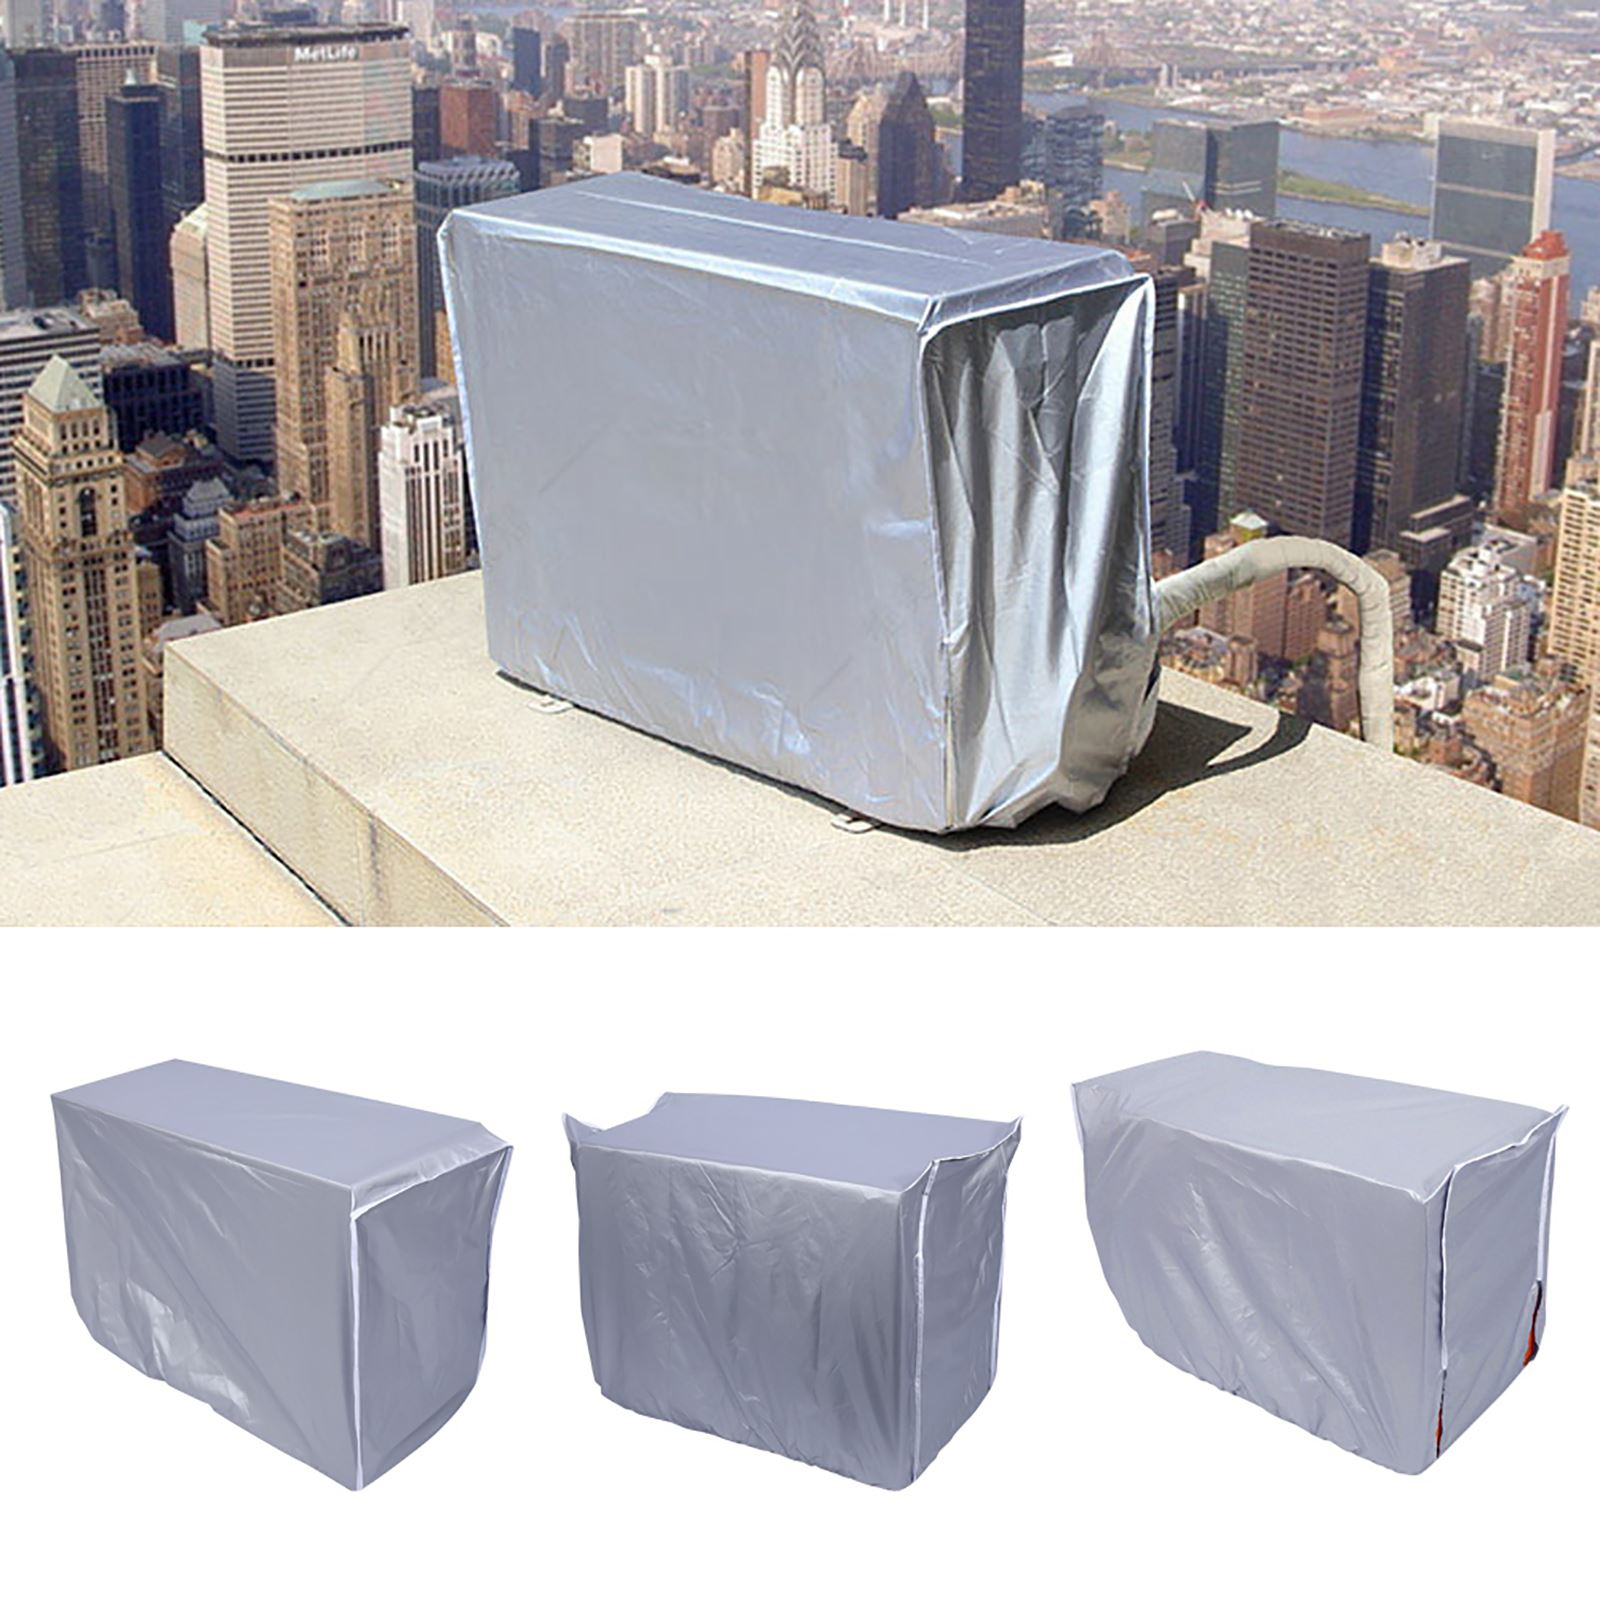 Outdoor Air Conditioner Cover Anti-Dust Anti-Snow Waterproof For Home #1 80*28*54cm Anti-Corrosion Deodorization